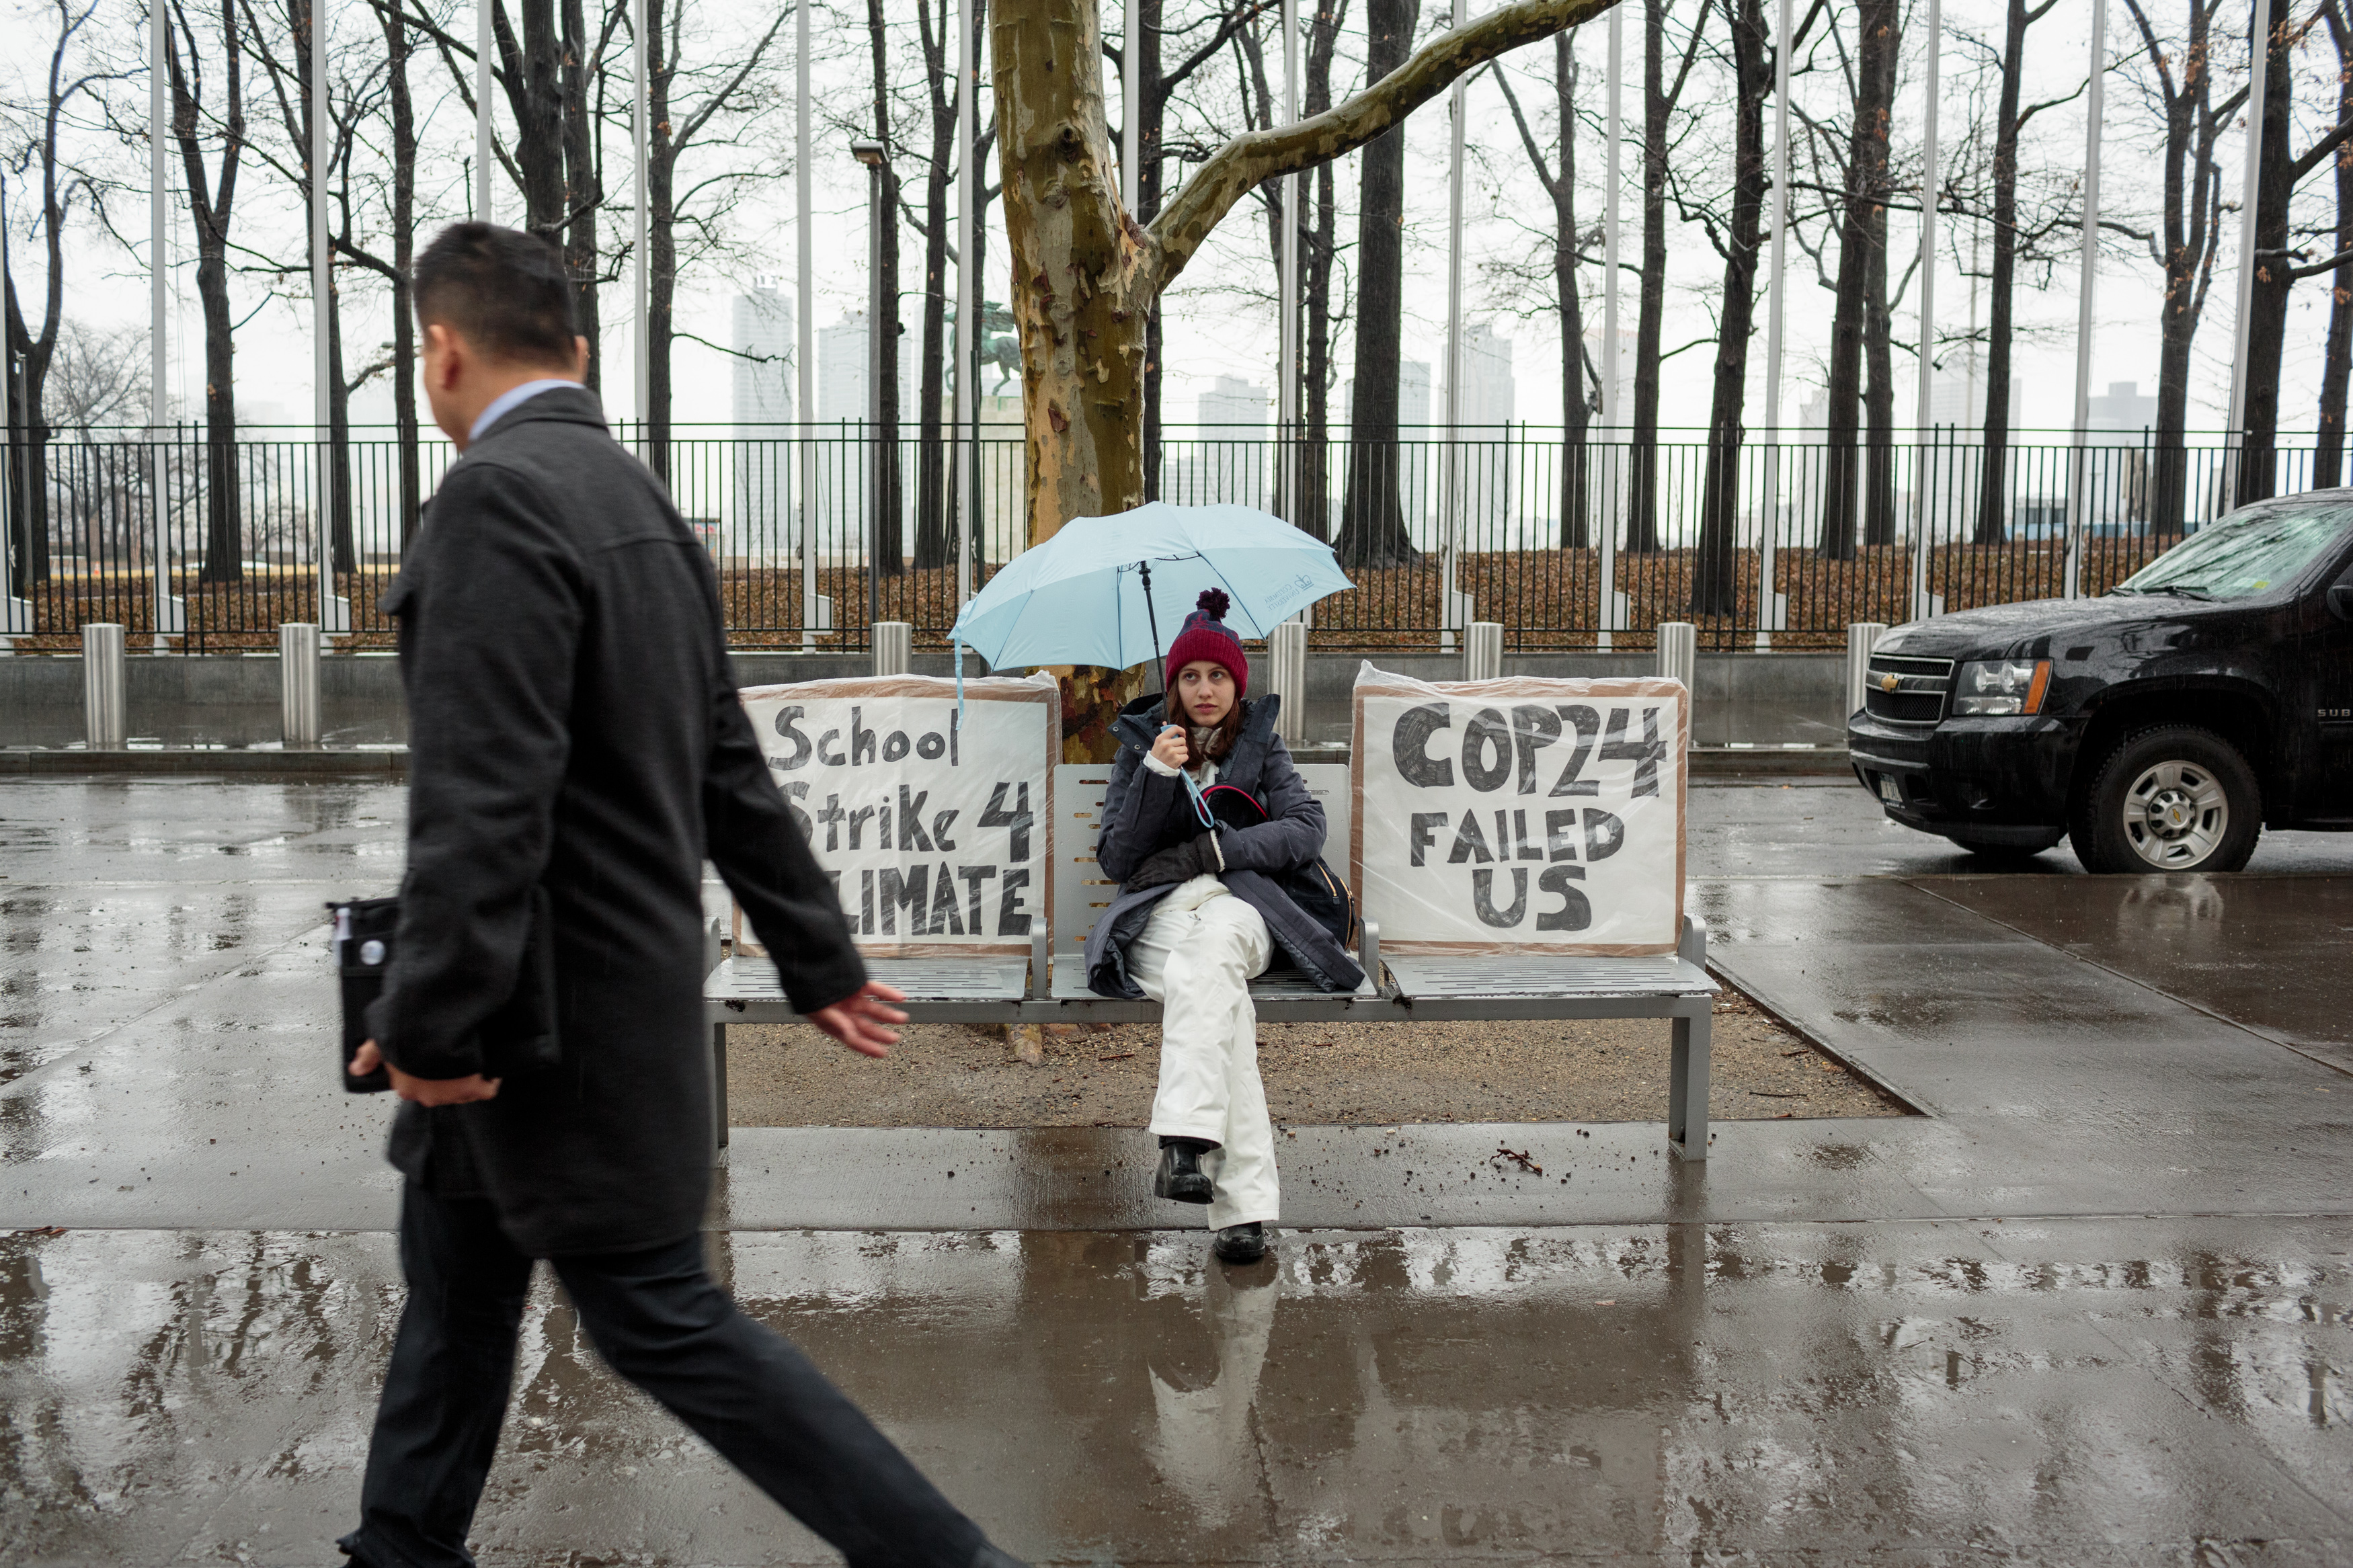 Alexandria Villasenor, 13, skips school to strike in front of the United Nations, with signs reading: